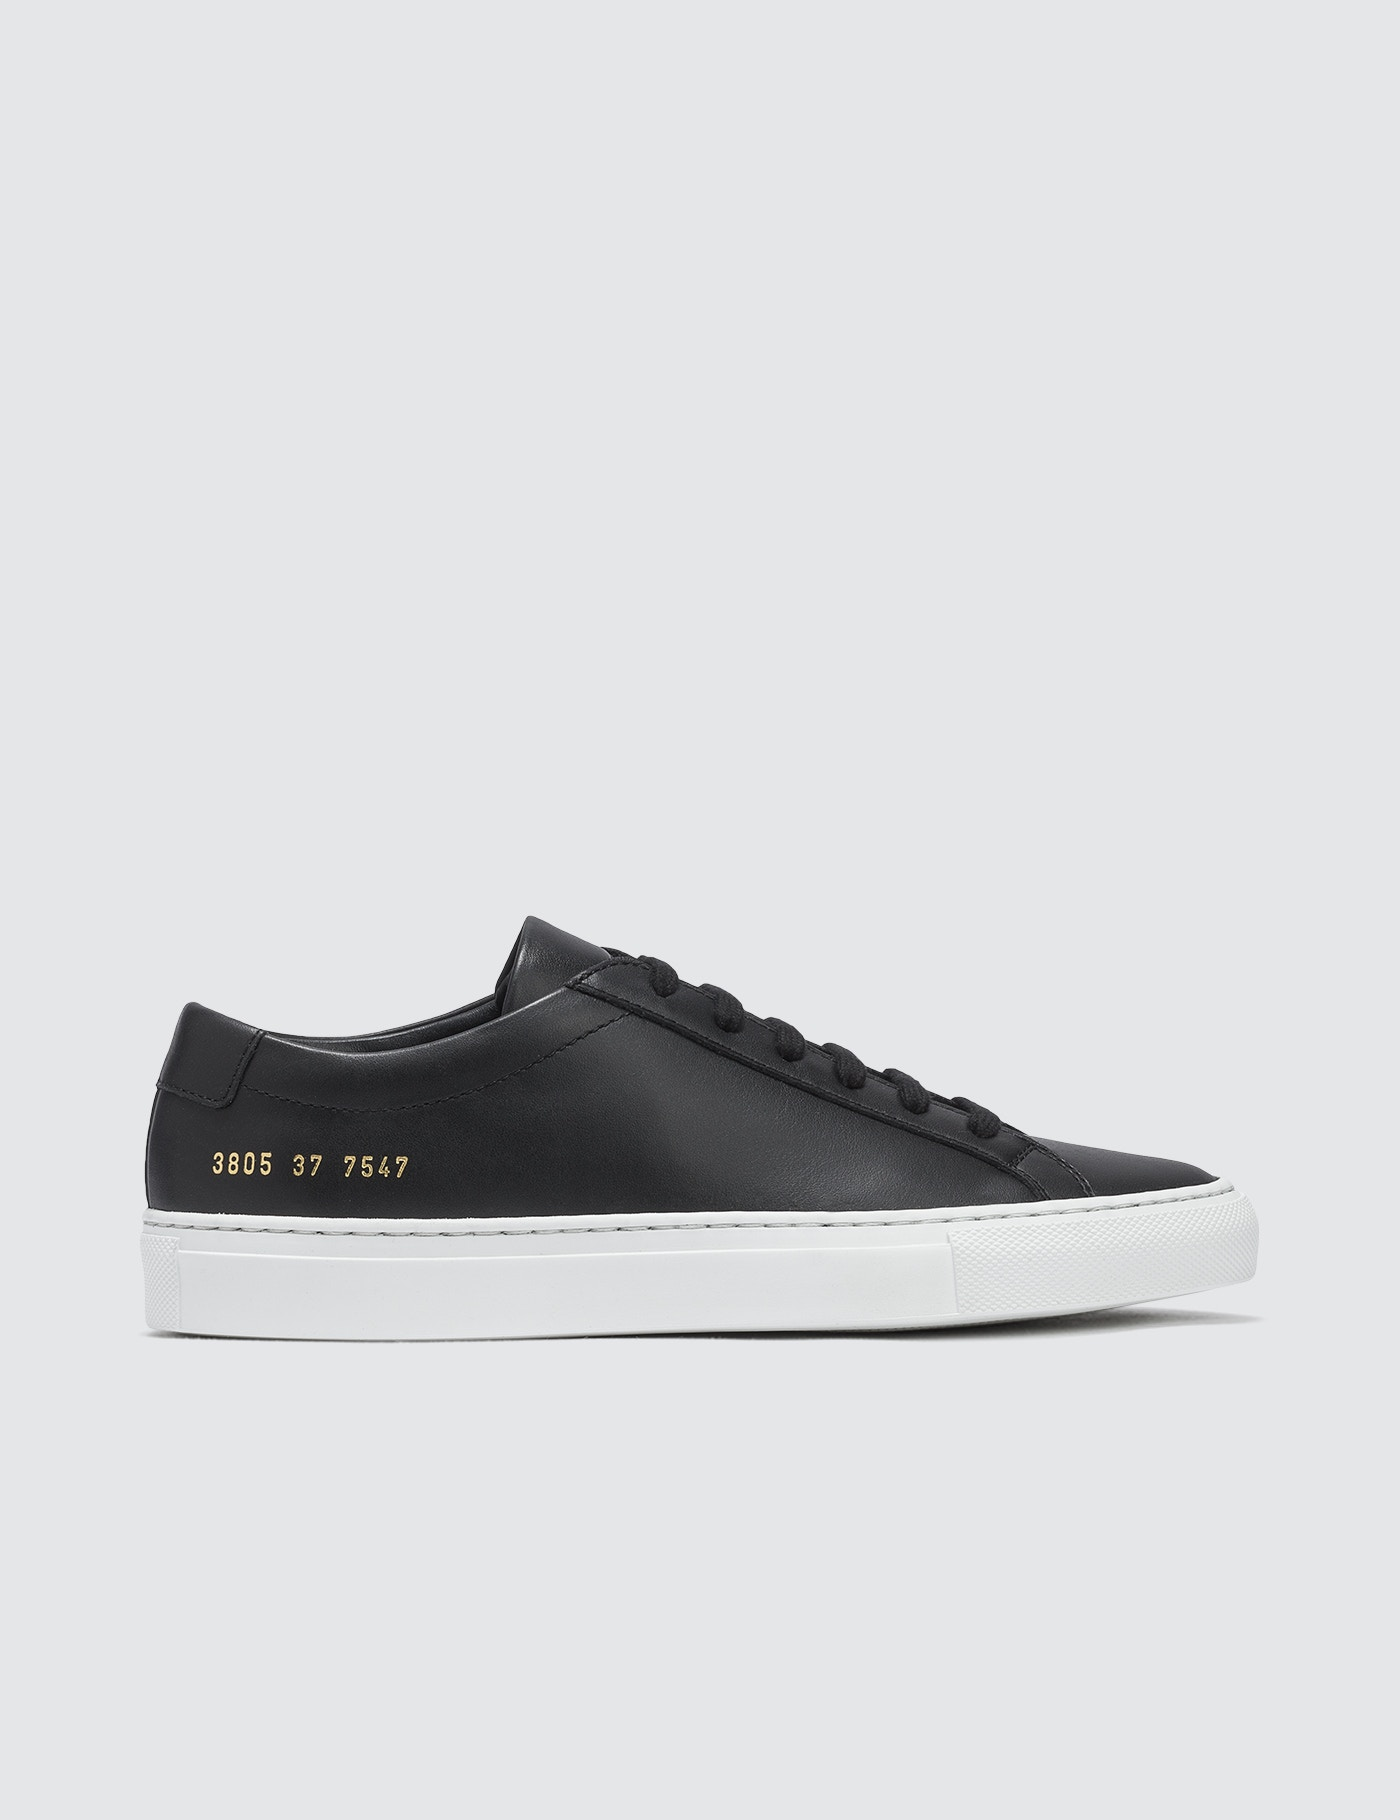 2af2a4e836b6d Buy Original Common Projects Original Achilles Low With White Sole ...